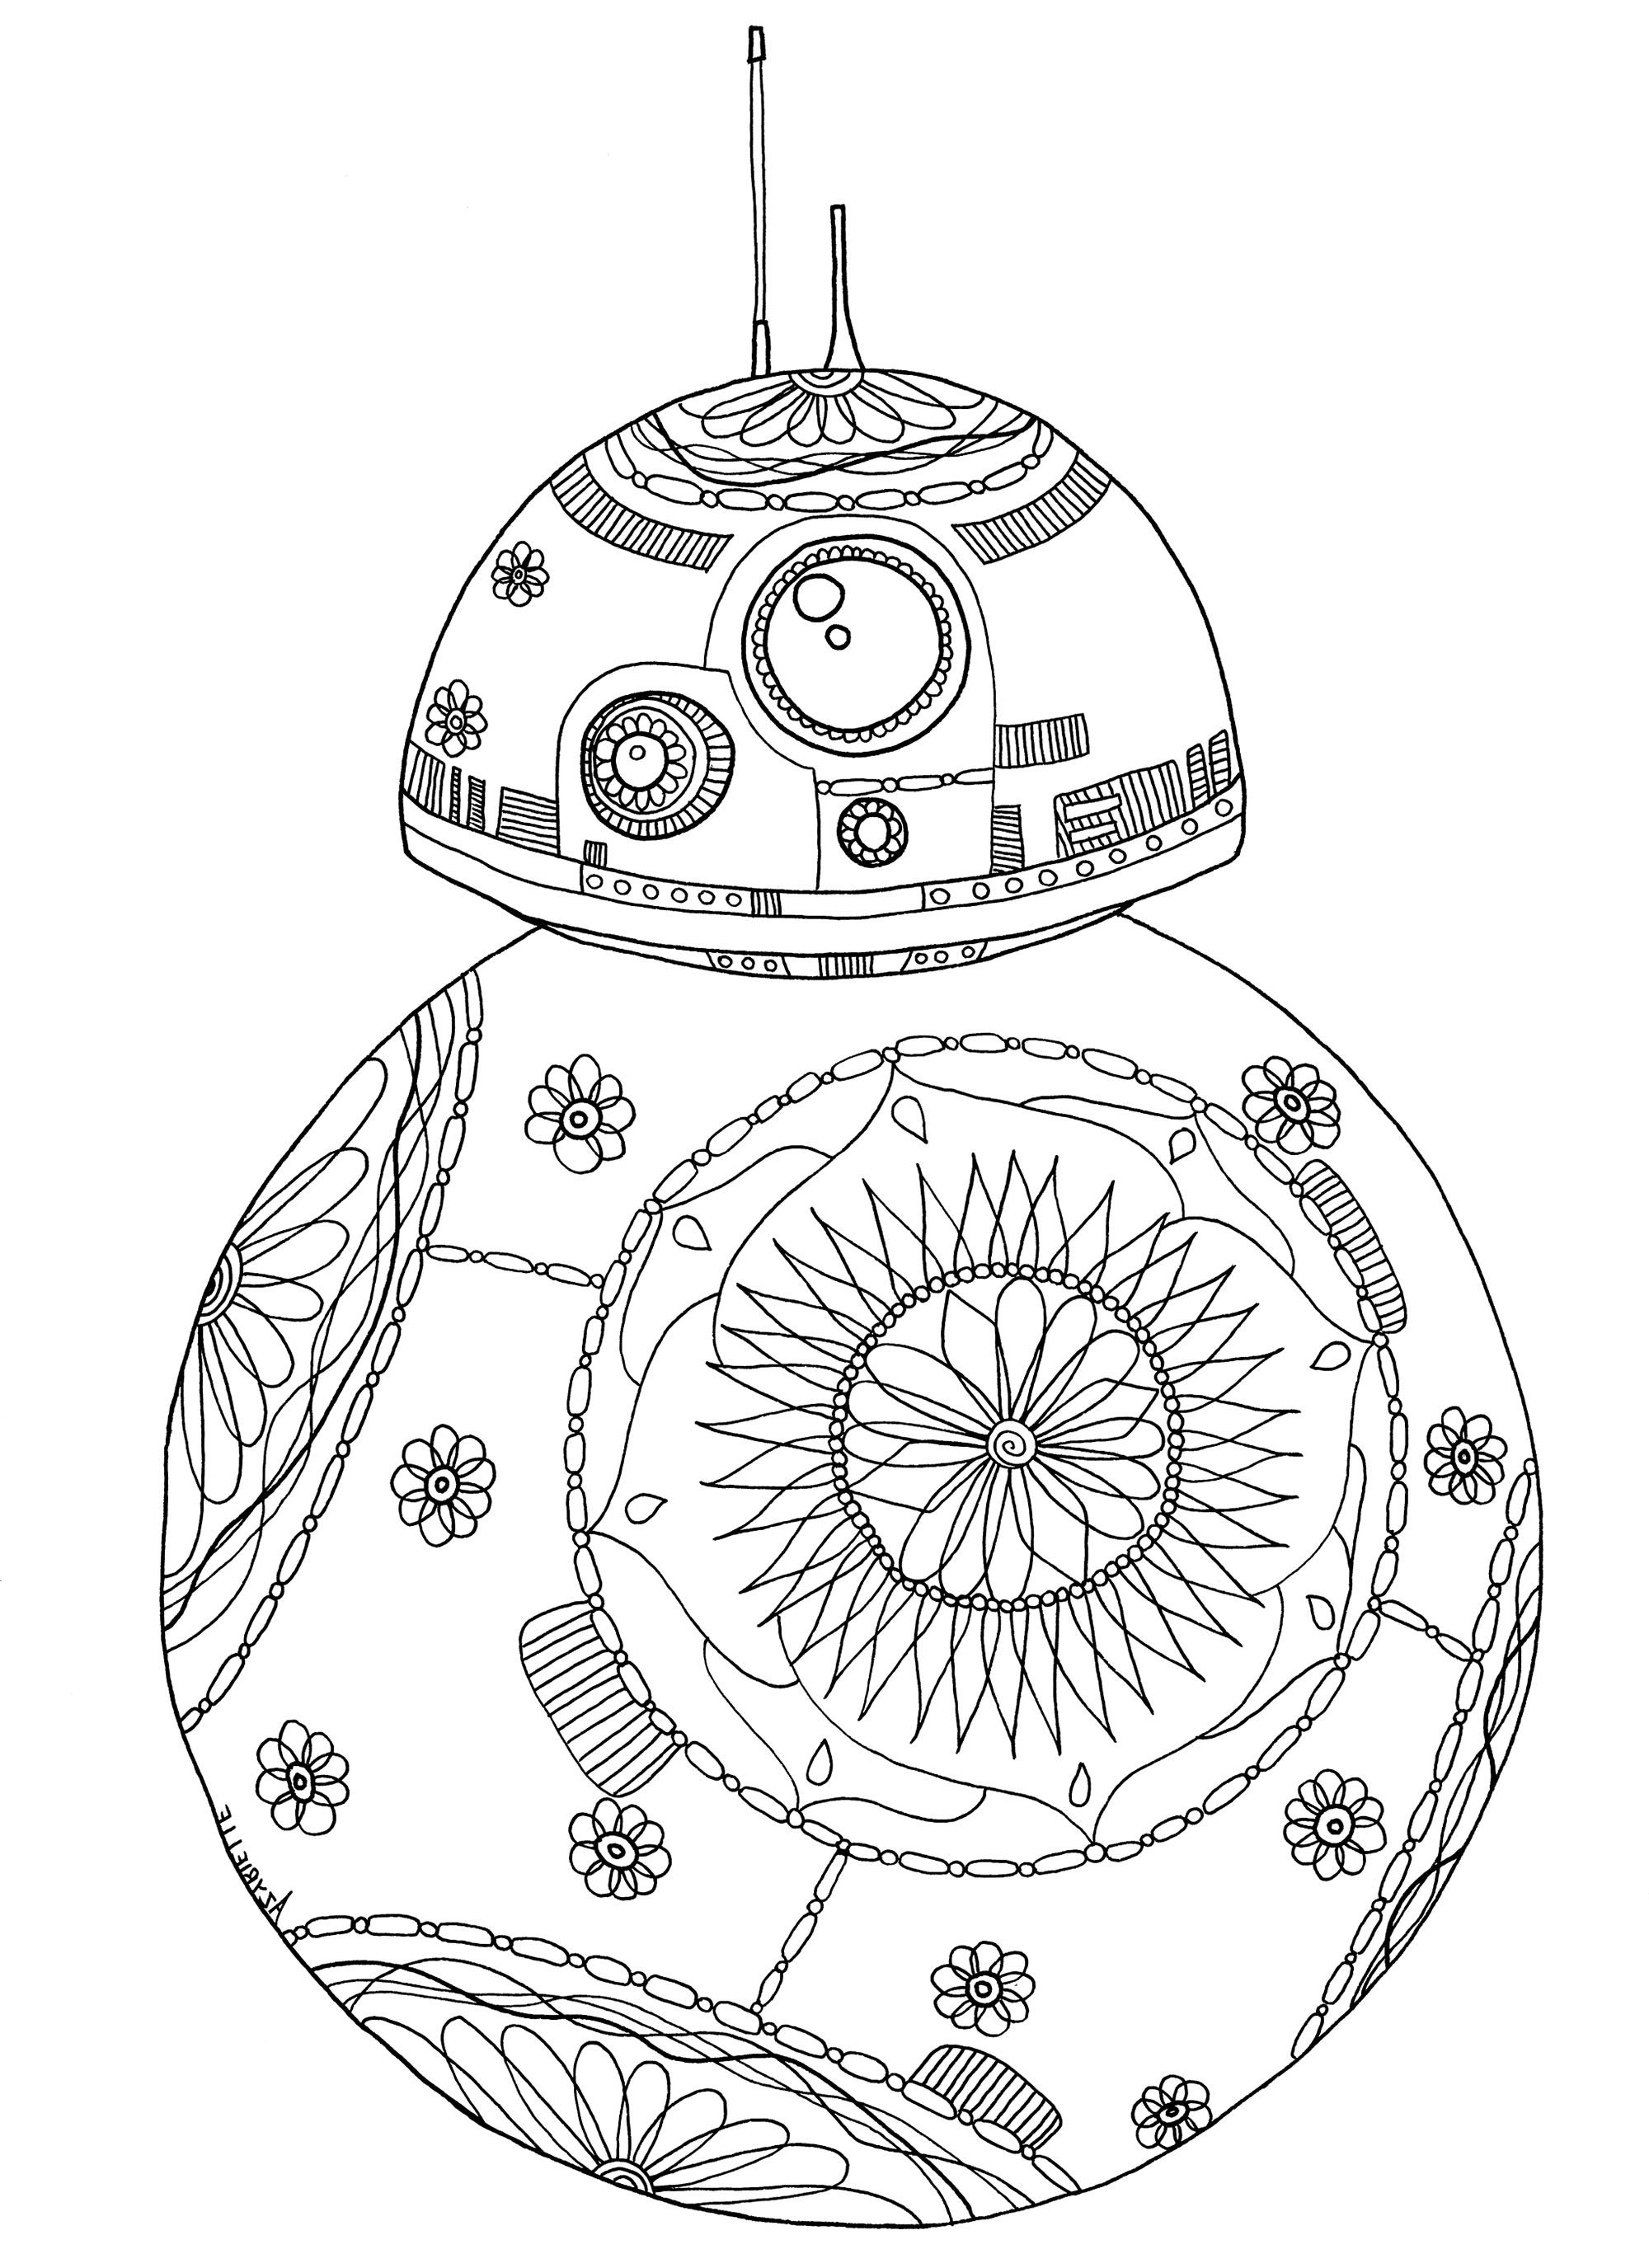 Star Wars Adult Coloring Pages Coloring Page Star